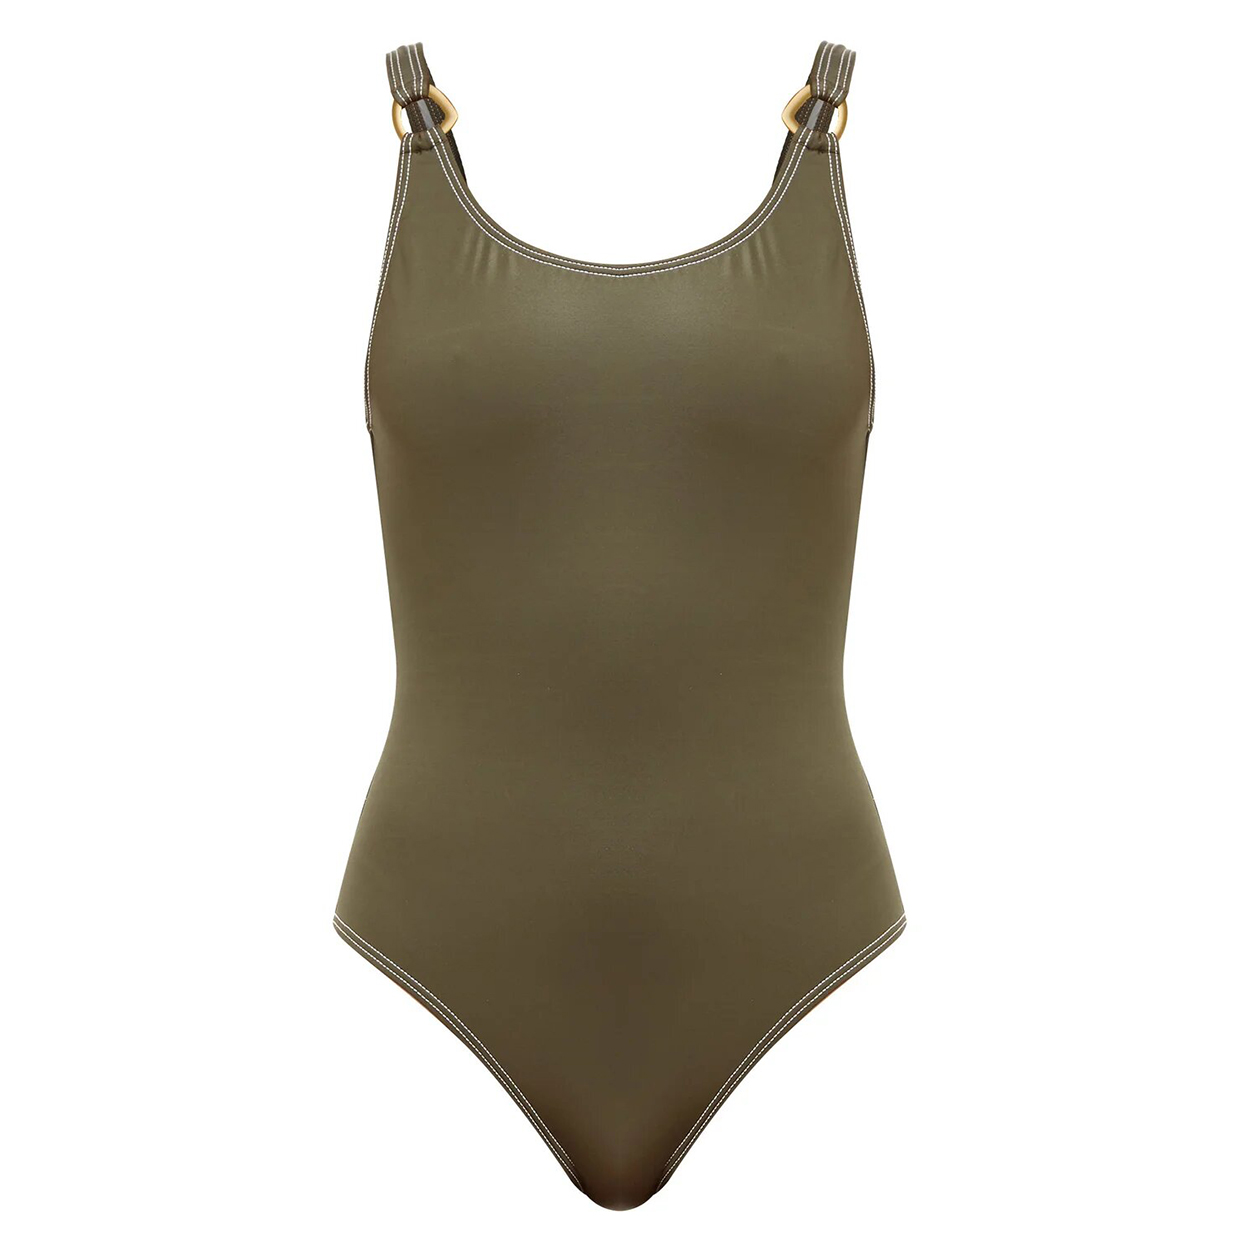 The Stella shimmer swimsuit